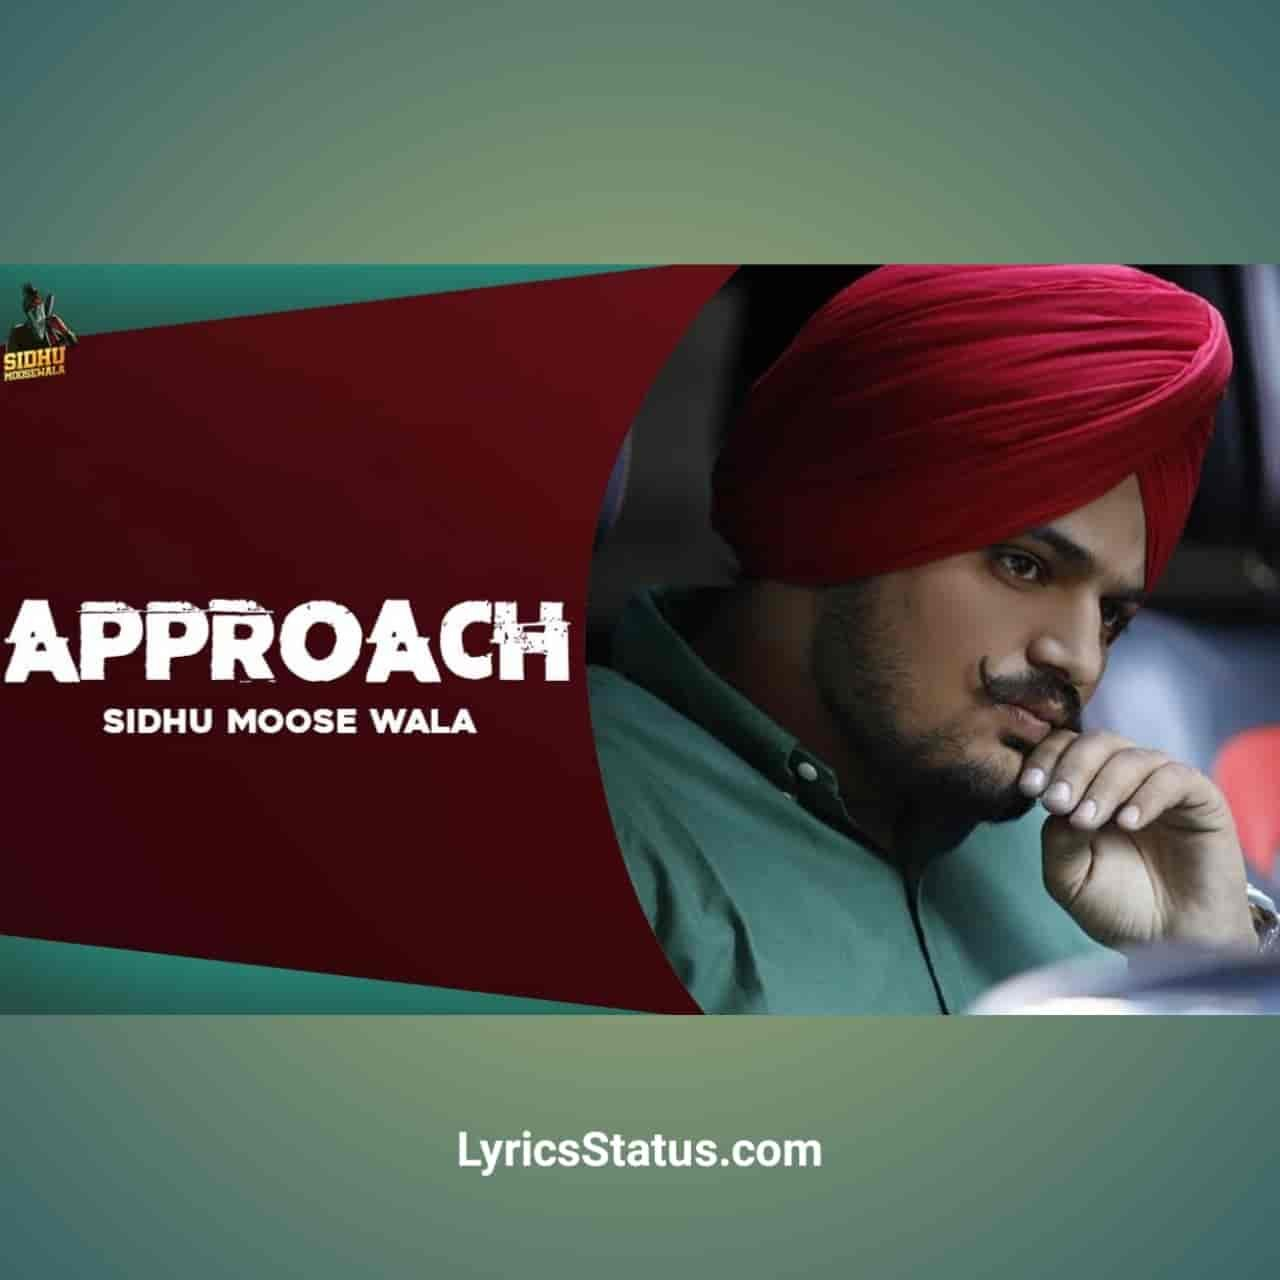 Sidhu Moose Wala Approach Lyrics Status Download Punjabi Song jina di approach'an te yu uddi firdi Naakeyan te le le saada naam langhde video